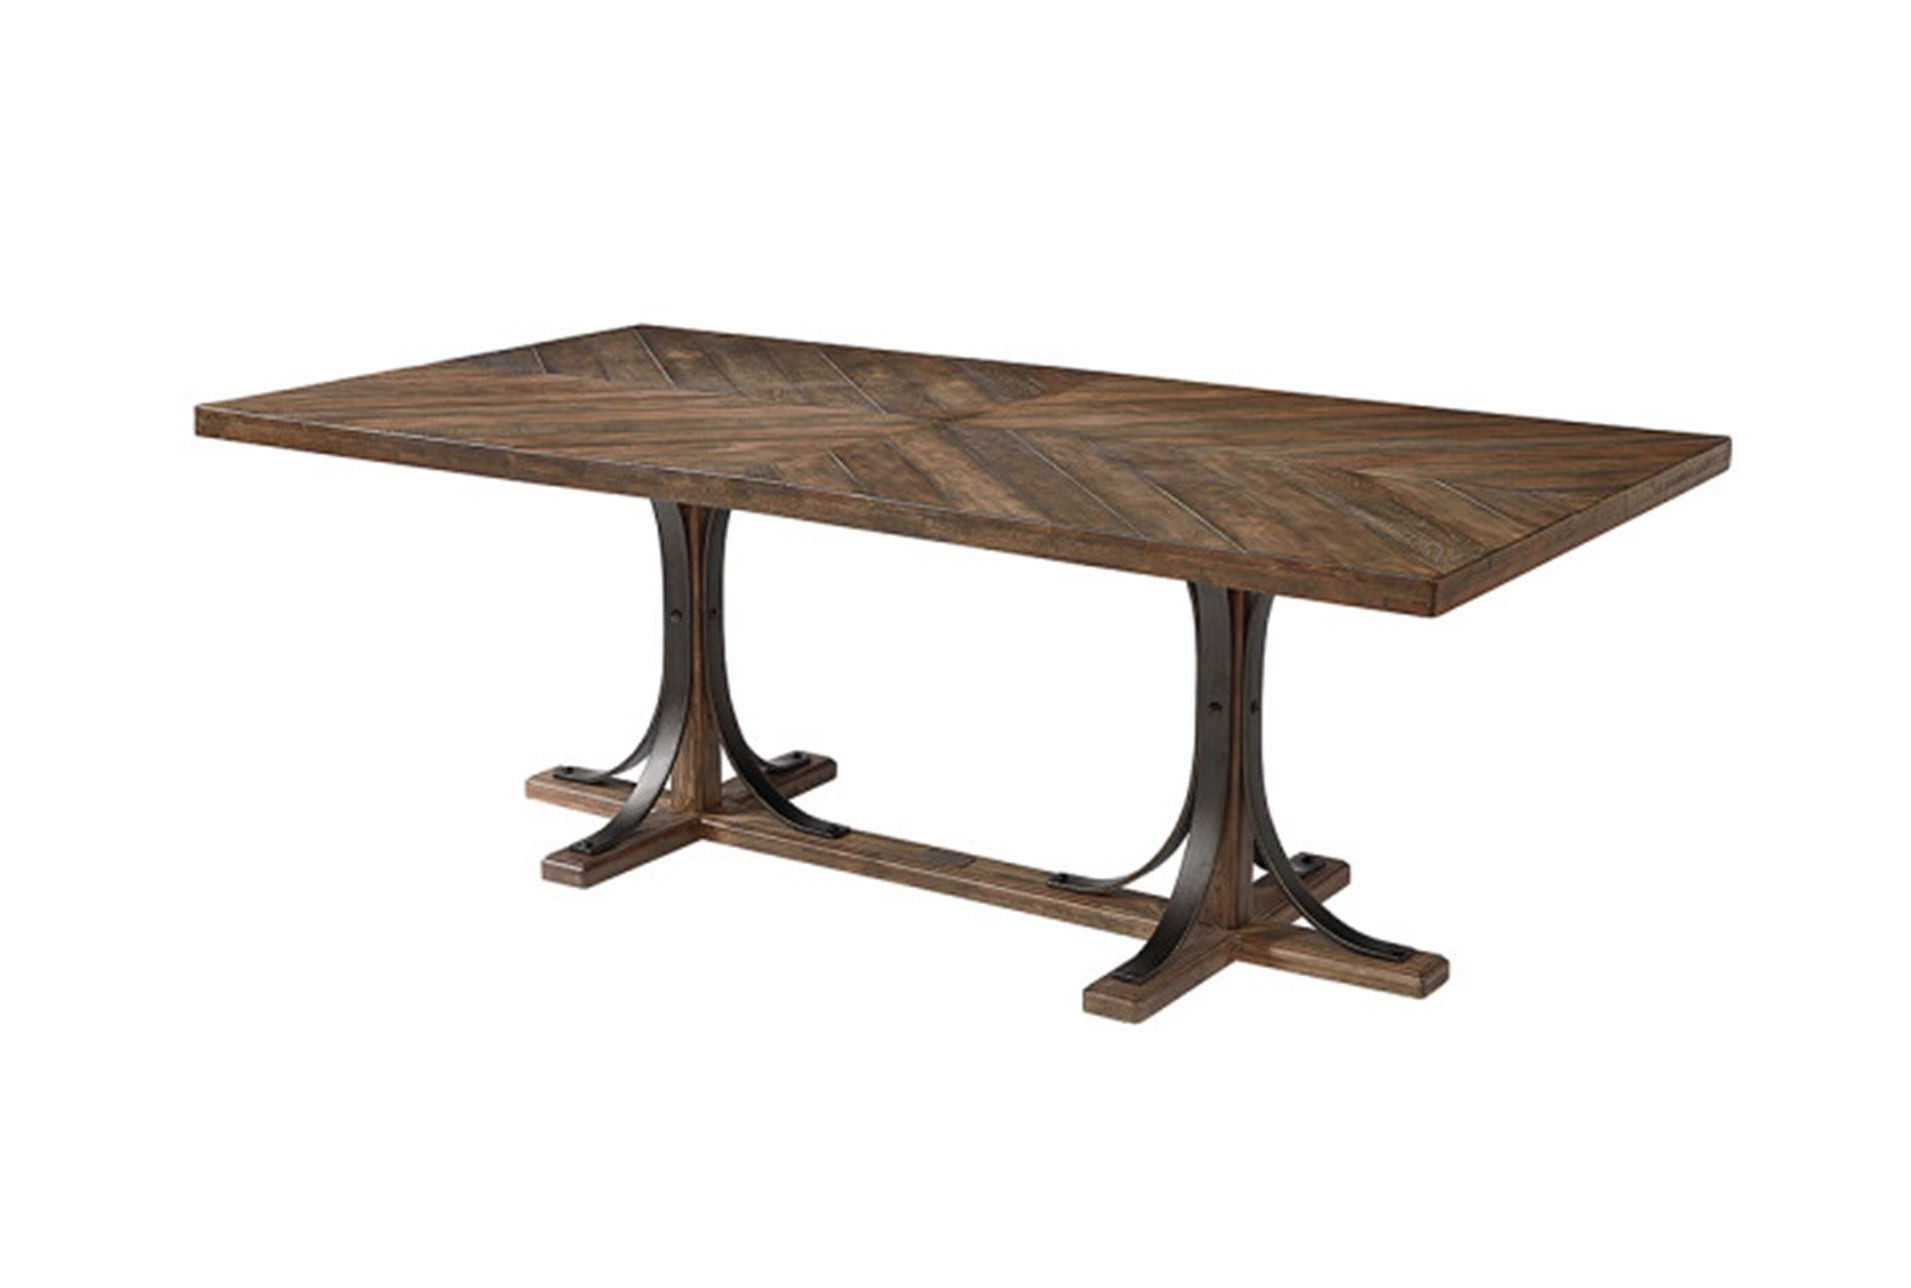 Magnolia Home Ellipse Cocktail Tables By Joanna Gaines Intended For Widely Used Magnolia Home Shop Floor Dining Table With Iron Trestlejoanna (View 5 of 20)